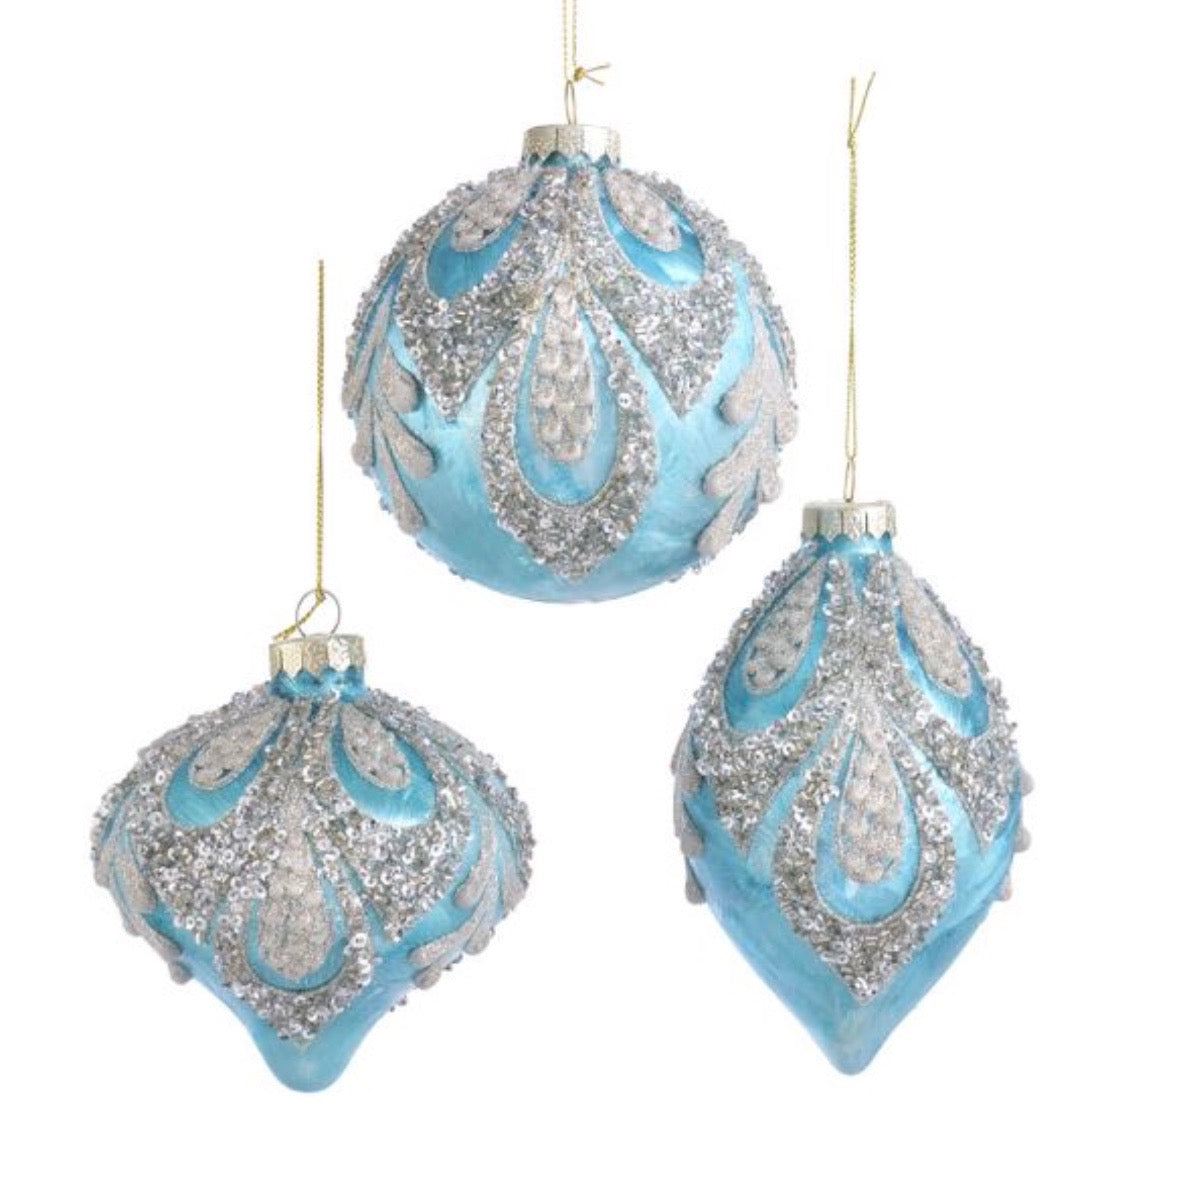 Kurt Adler Tiffany Blue Decorated Glass Ornaments | Putti Christmas